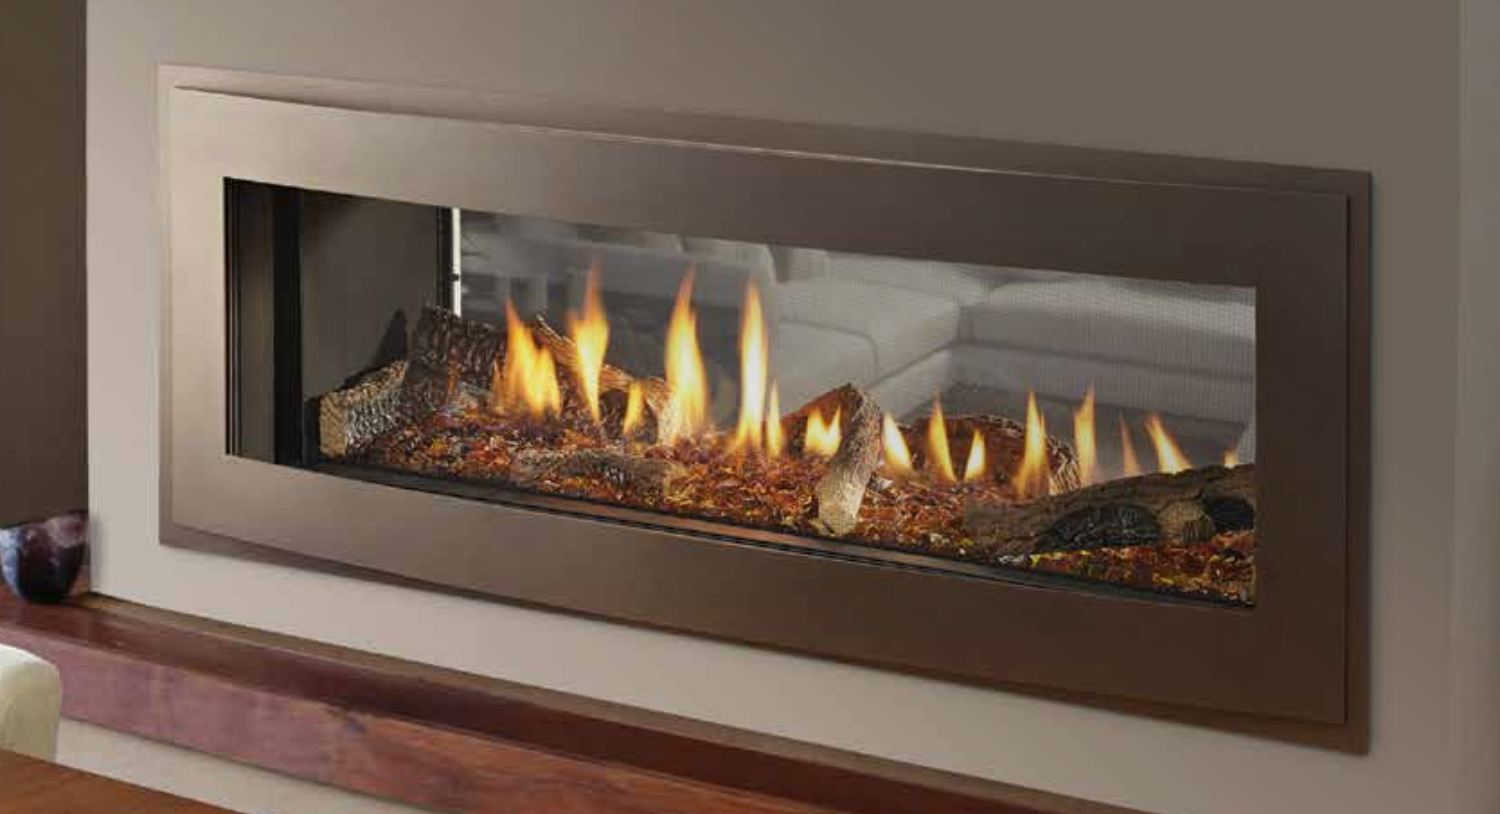 Crave series gas fireplace modern the energy house for Modern gas fireplace price